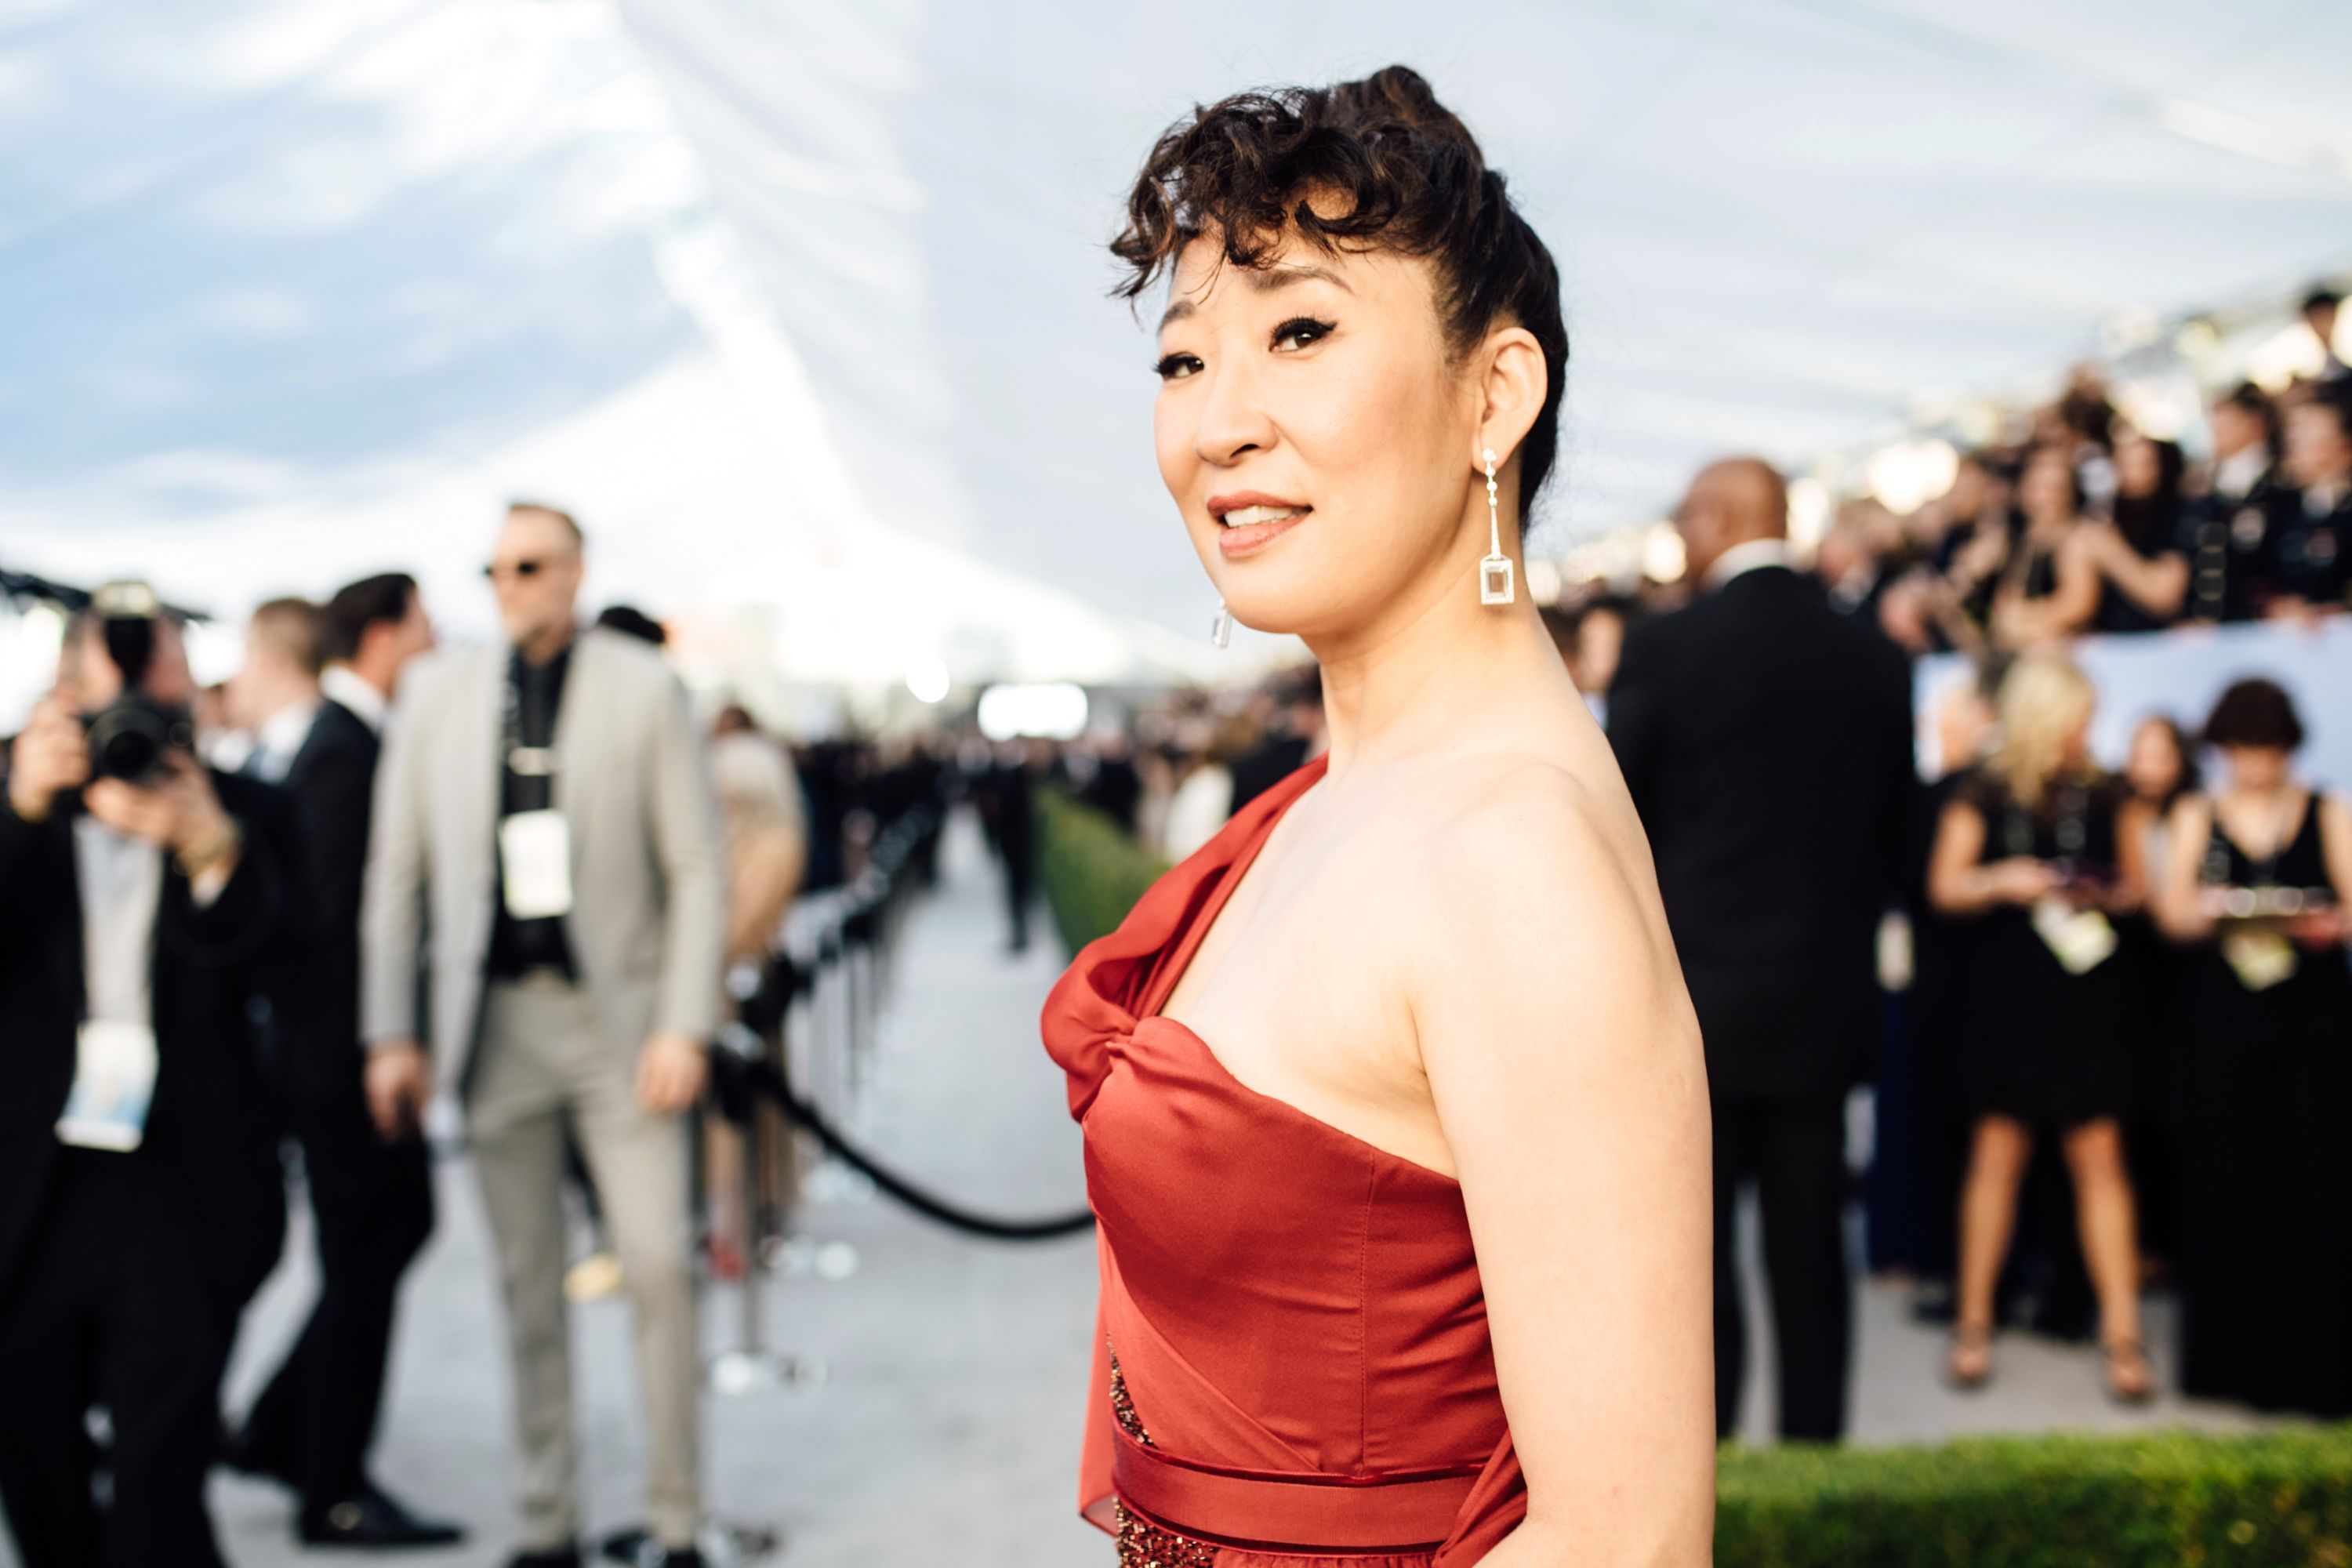 Watch Sandra Oh Recreate Her Iconic Scene In The Princess Diaries